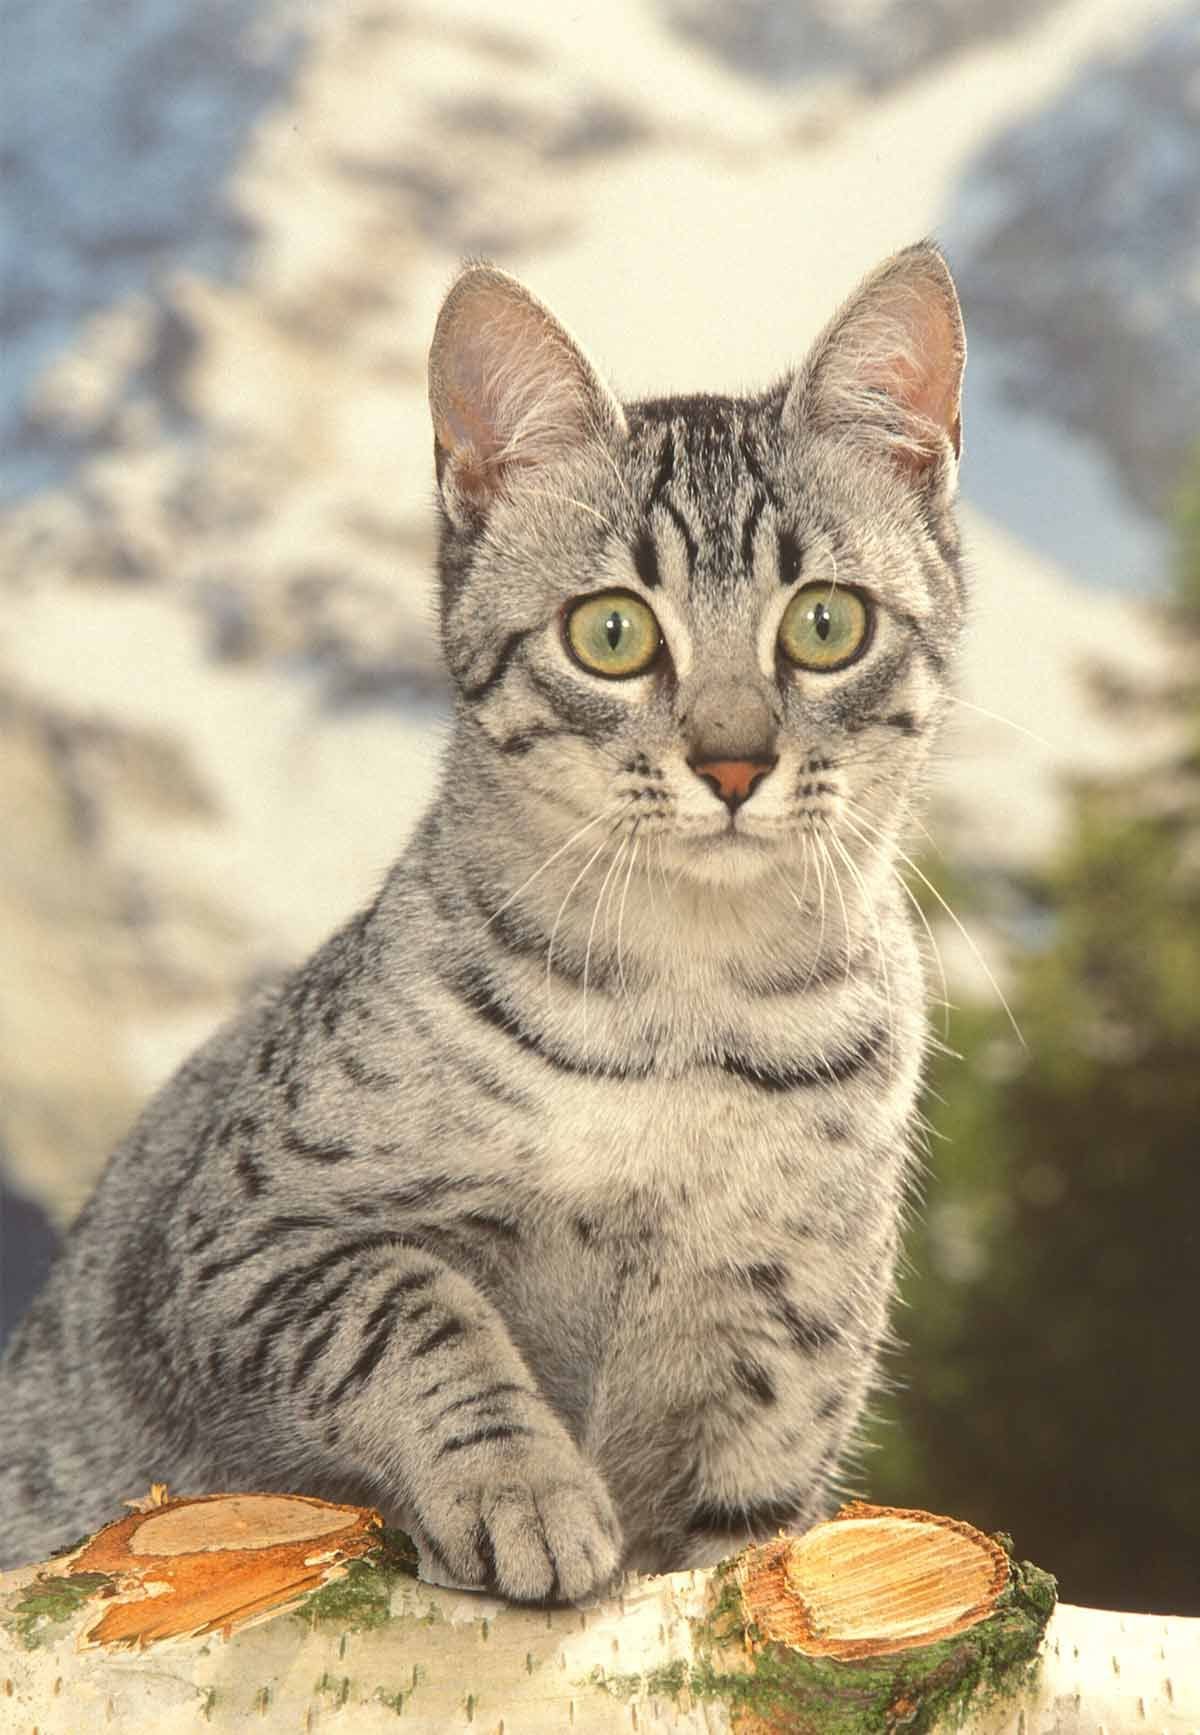 Egyptian Mau Kitten Sitting Near Window Egyptian Maus Cat Are A Small To Medium Sized Short Haired Cat Breed Along With Egyptian Mau Cats And Kittens Cats